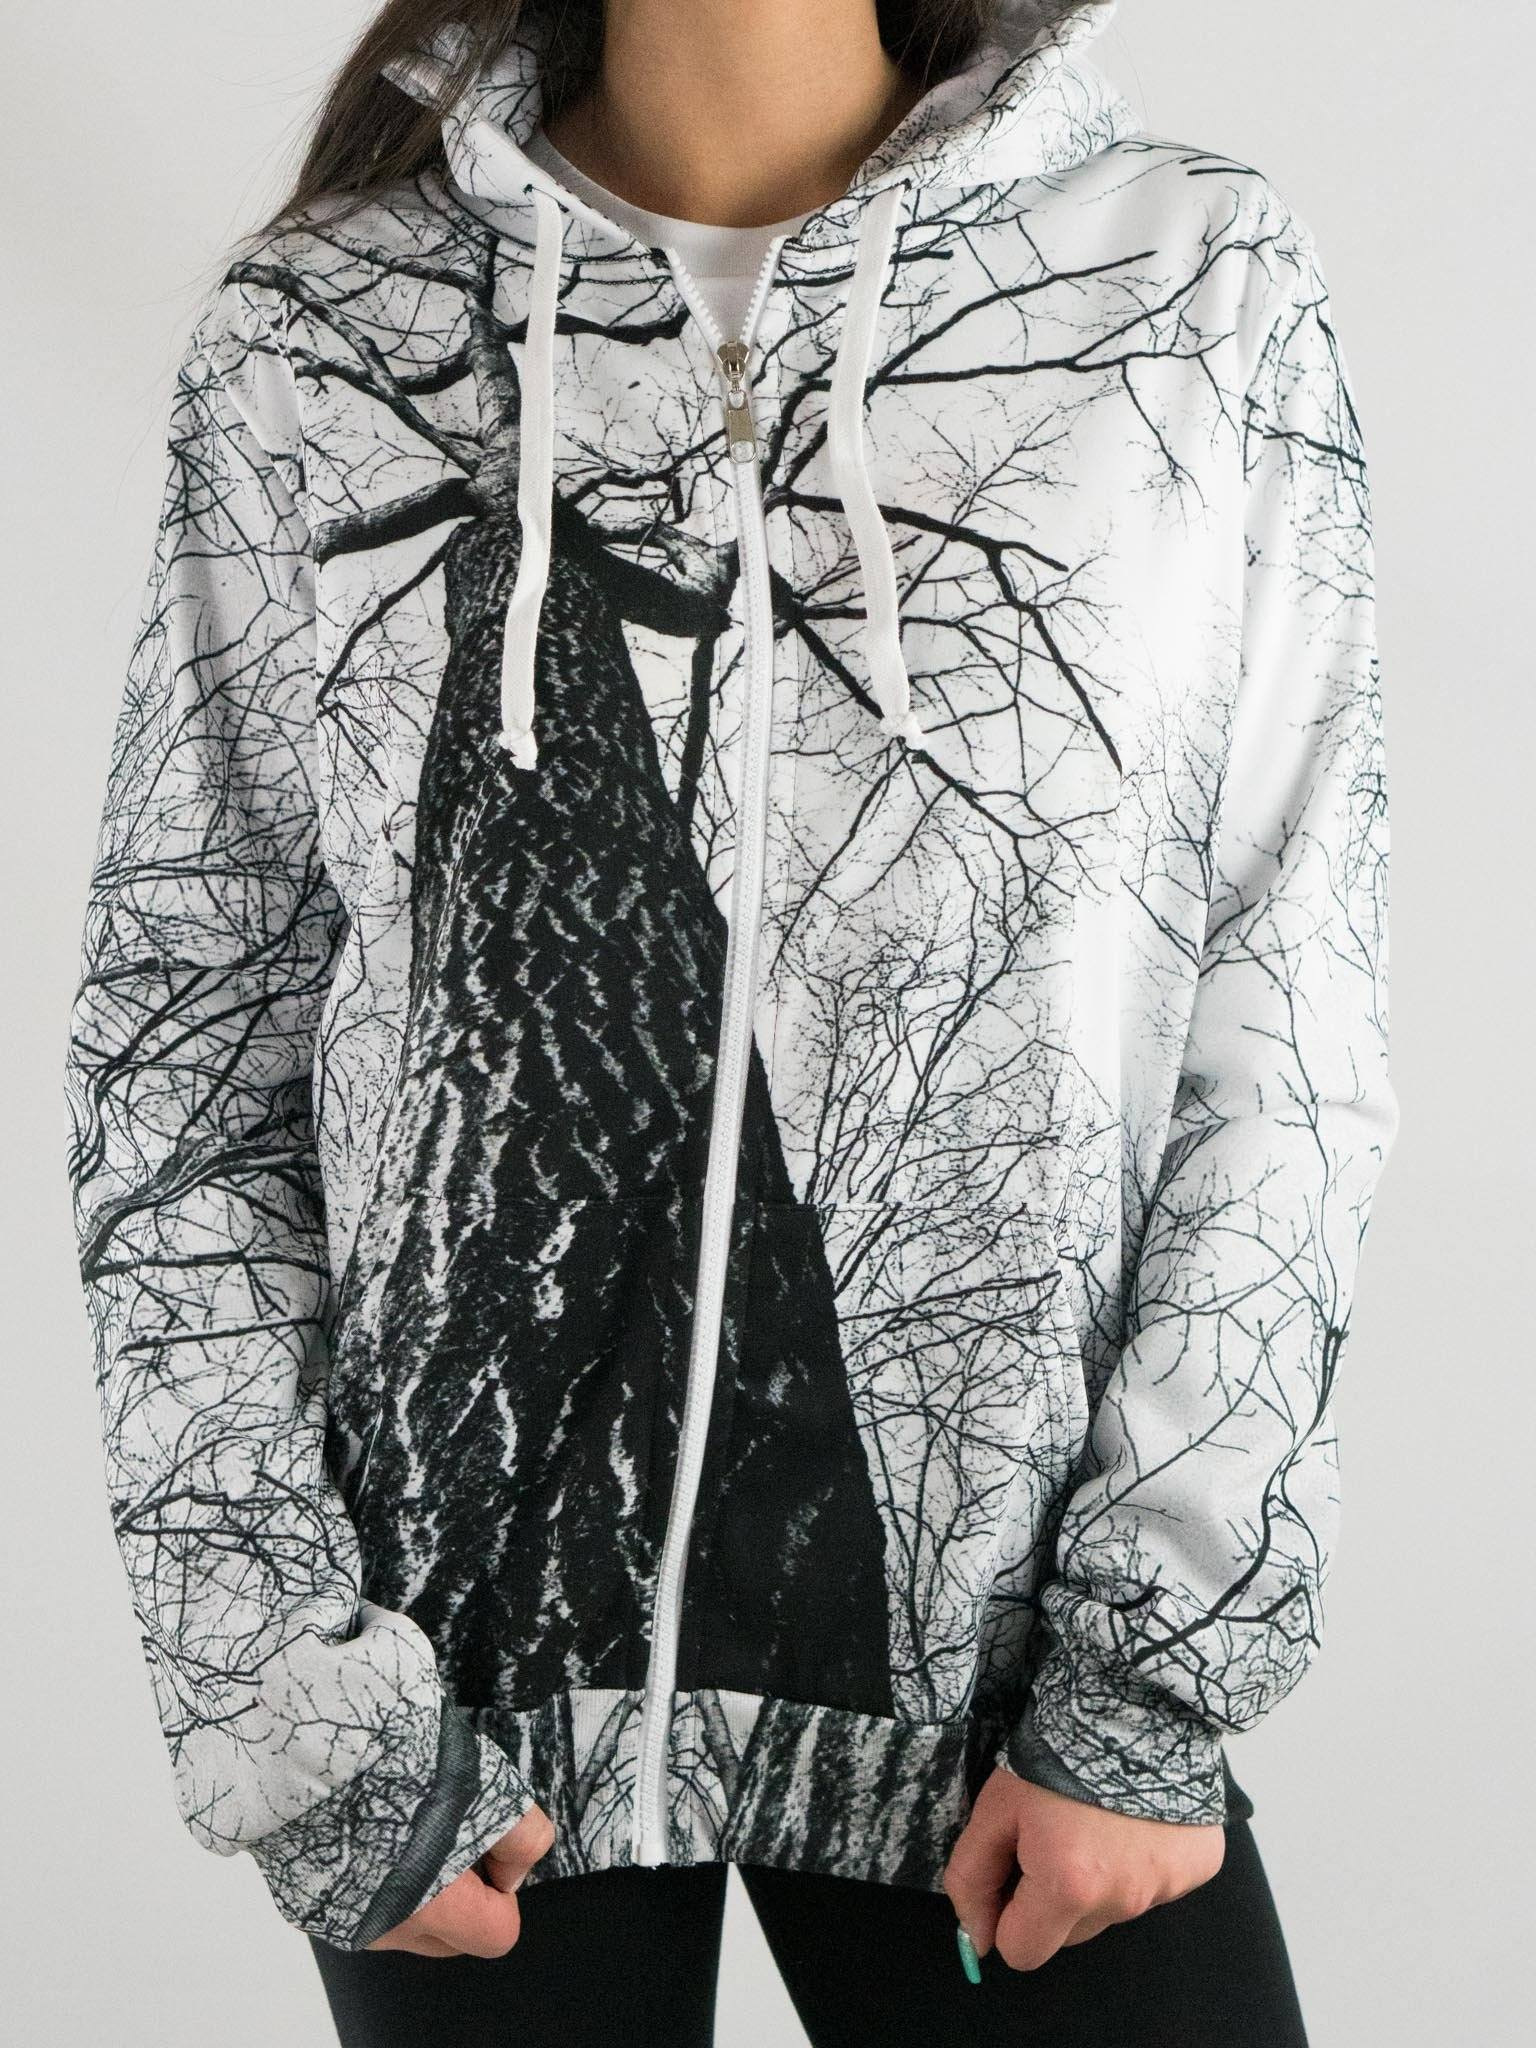 Higher Trees Unisex Zip Hoodie Pullover Hoodies T6